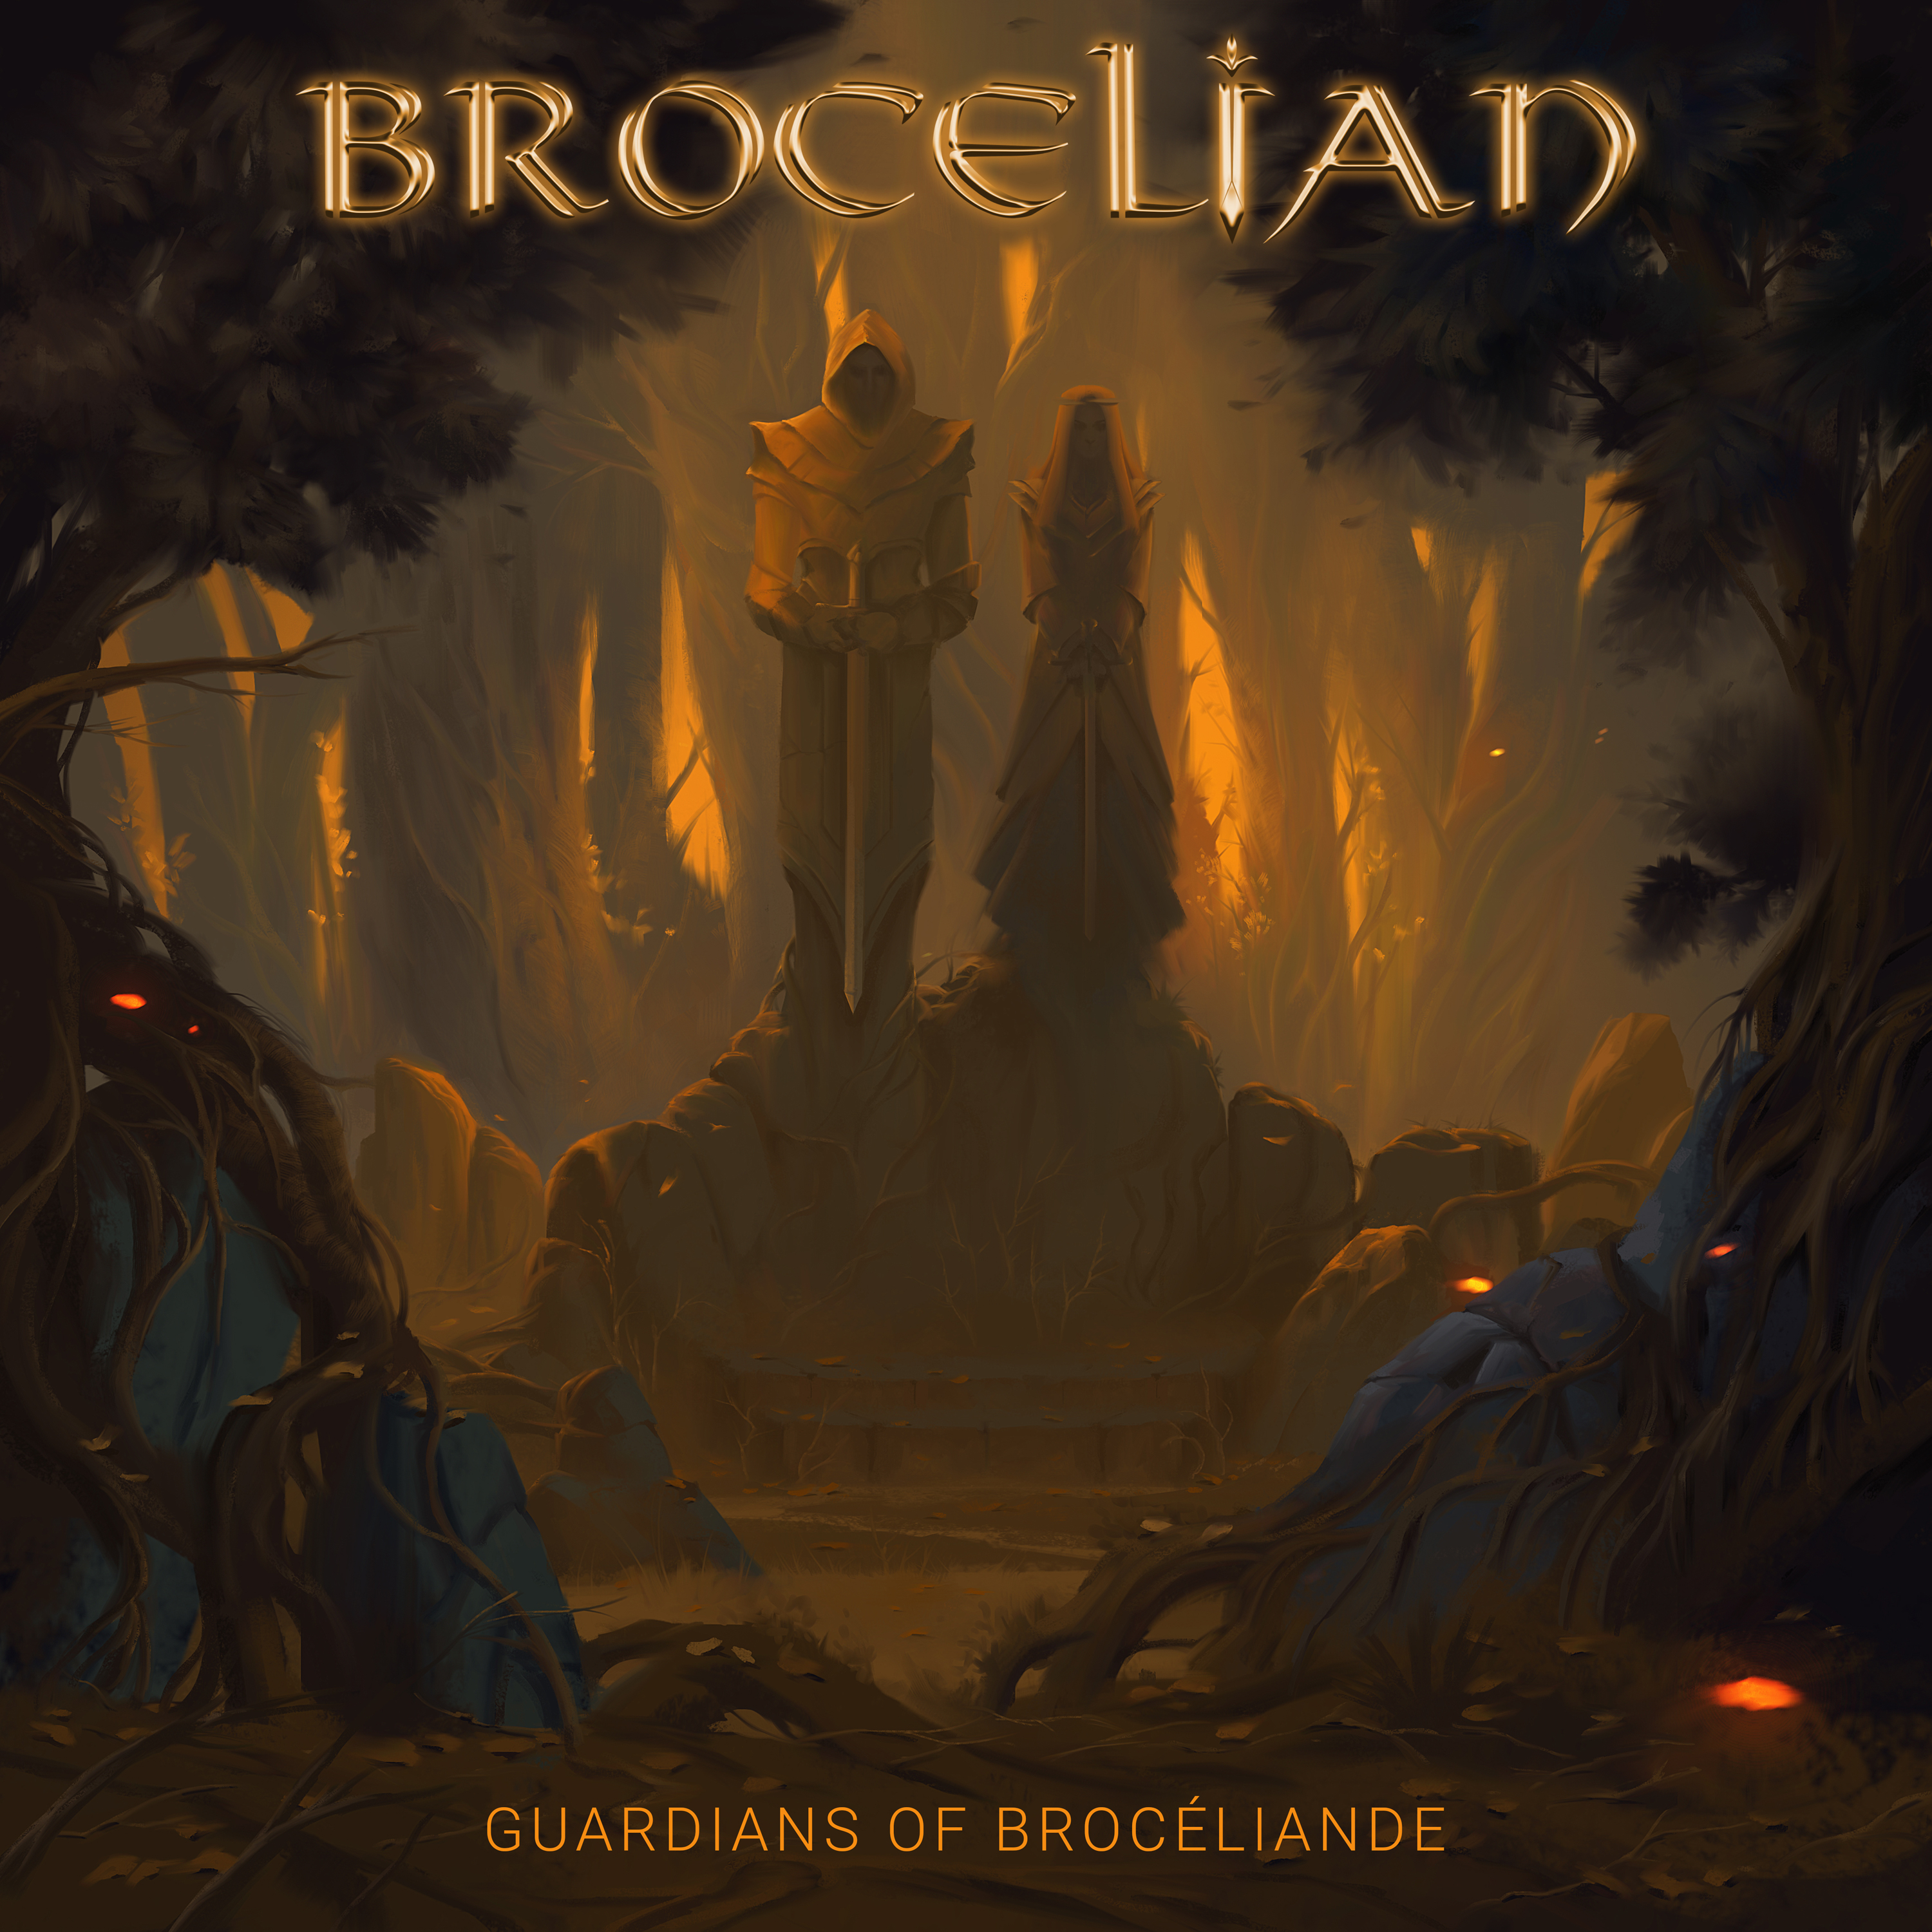 brocelian-guardians-of-broceliande-album-review